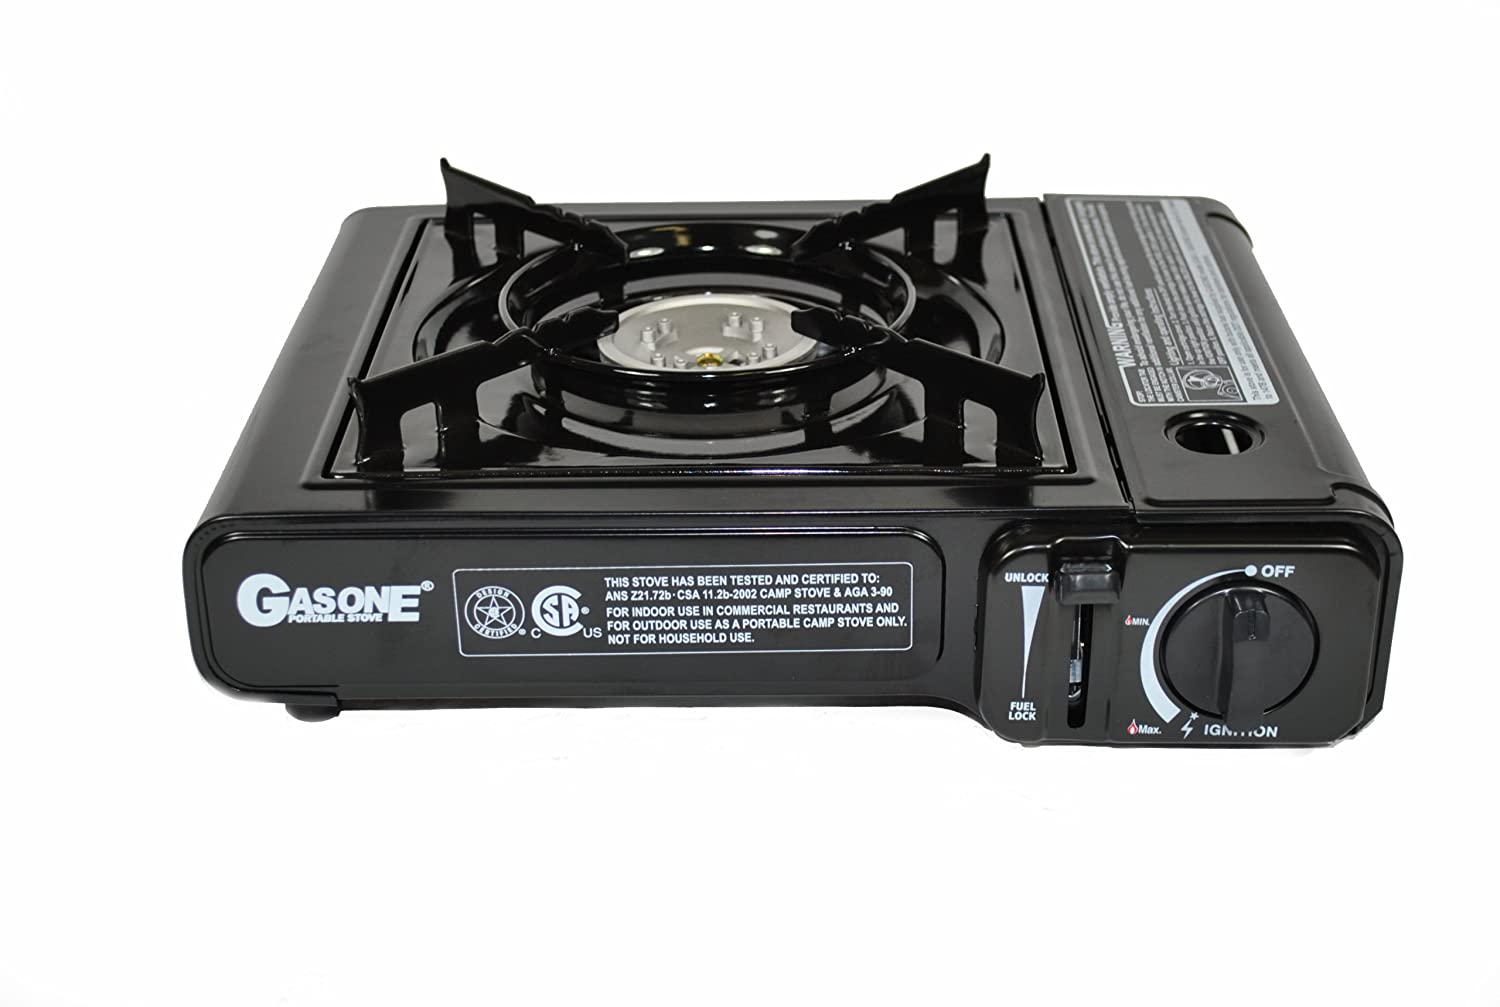 amazoncom gas one gs3000 portable gas stove with carrying case 9 000 btu csa approved black camping stoves sports u0026 outdoors